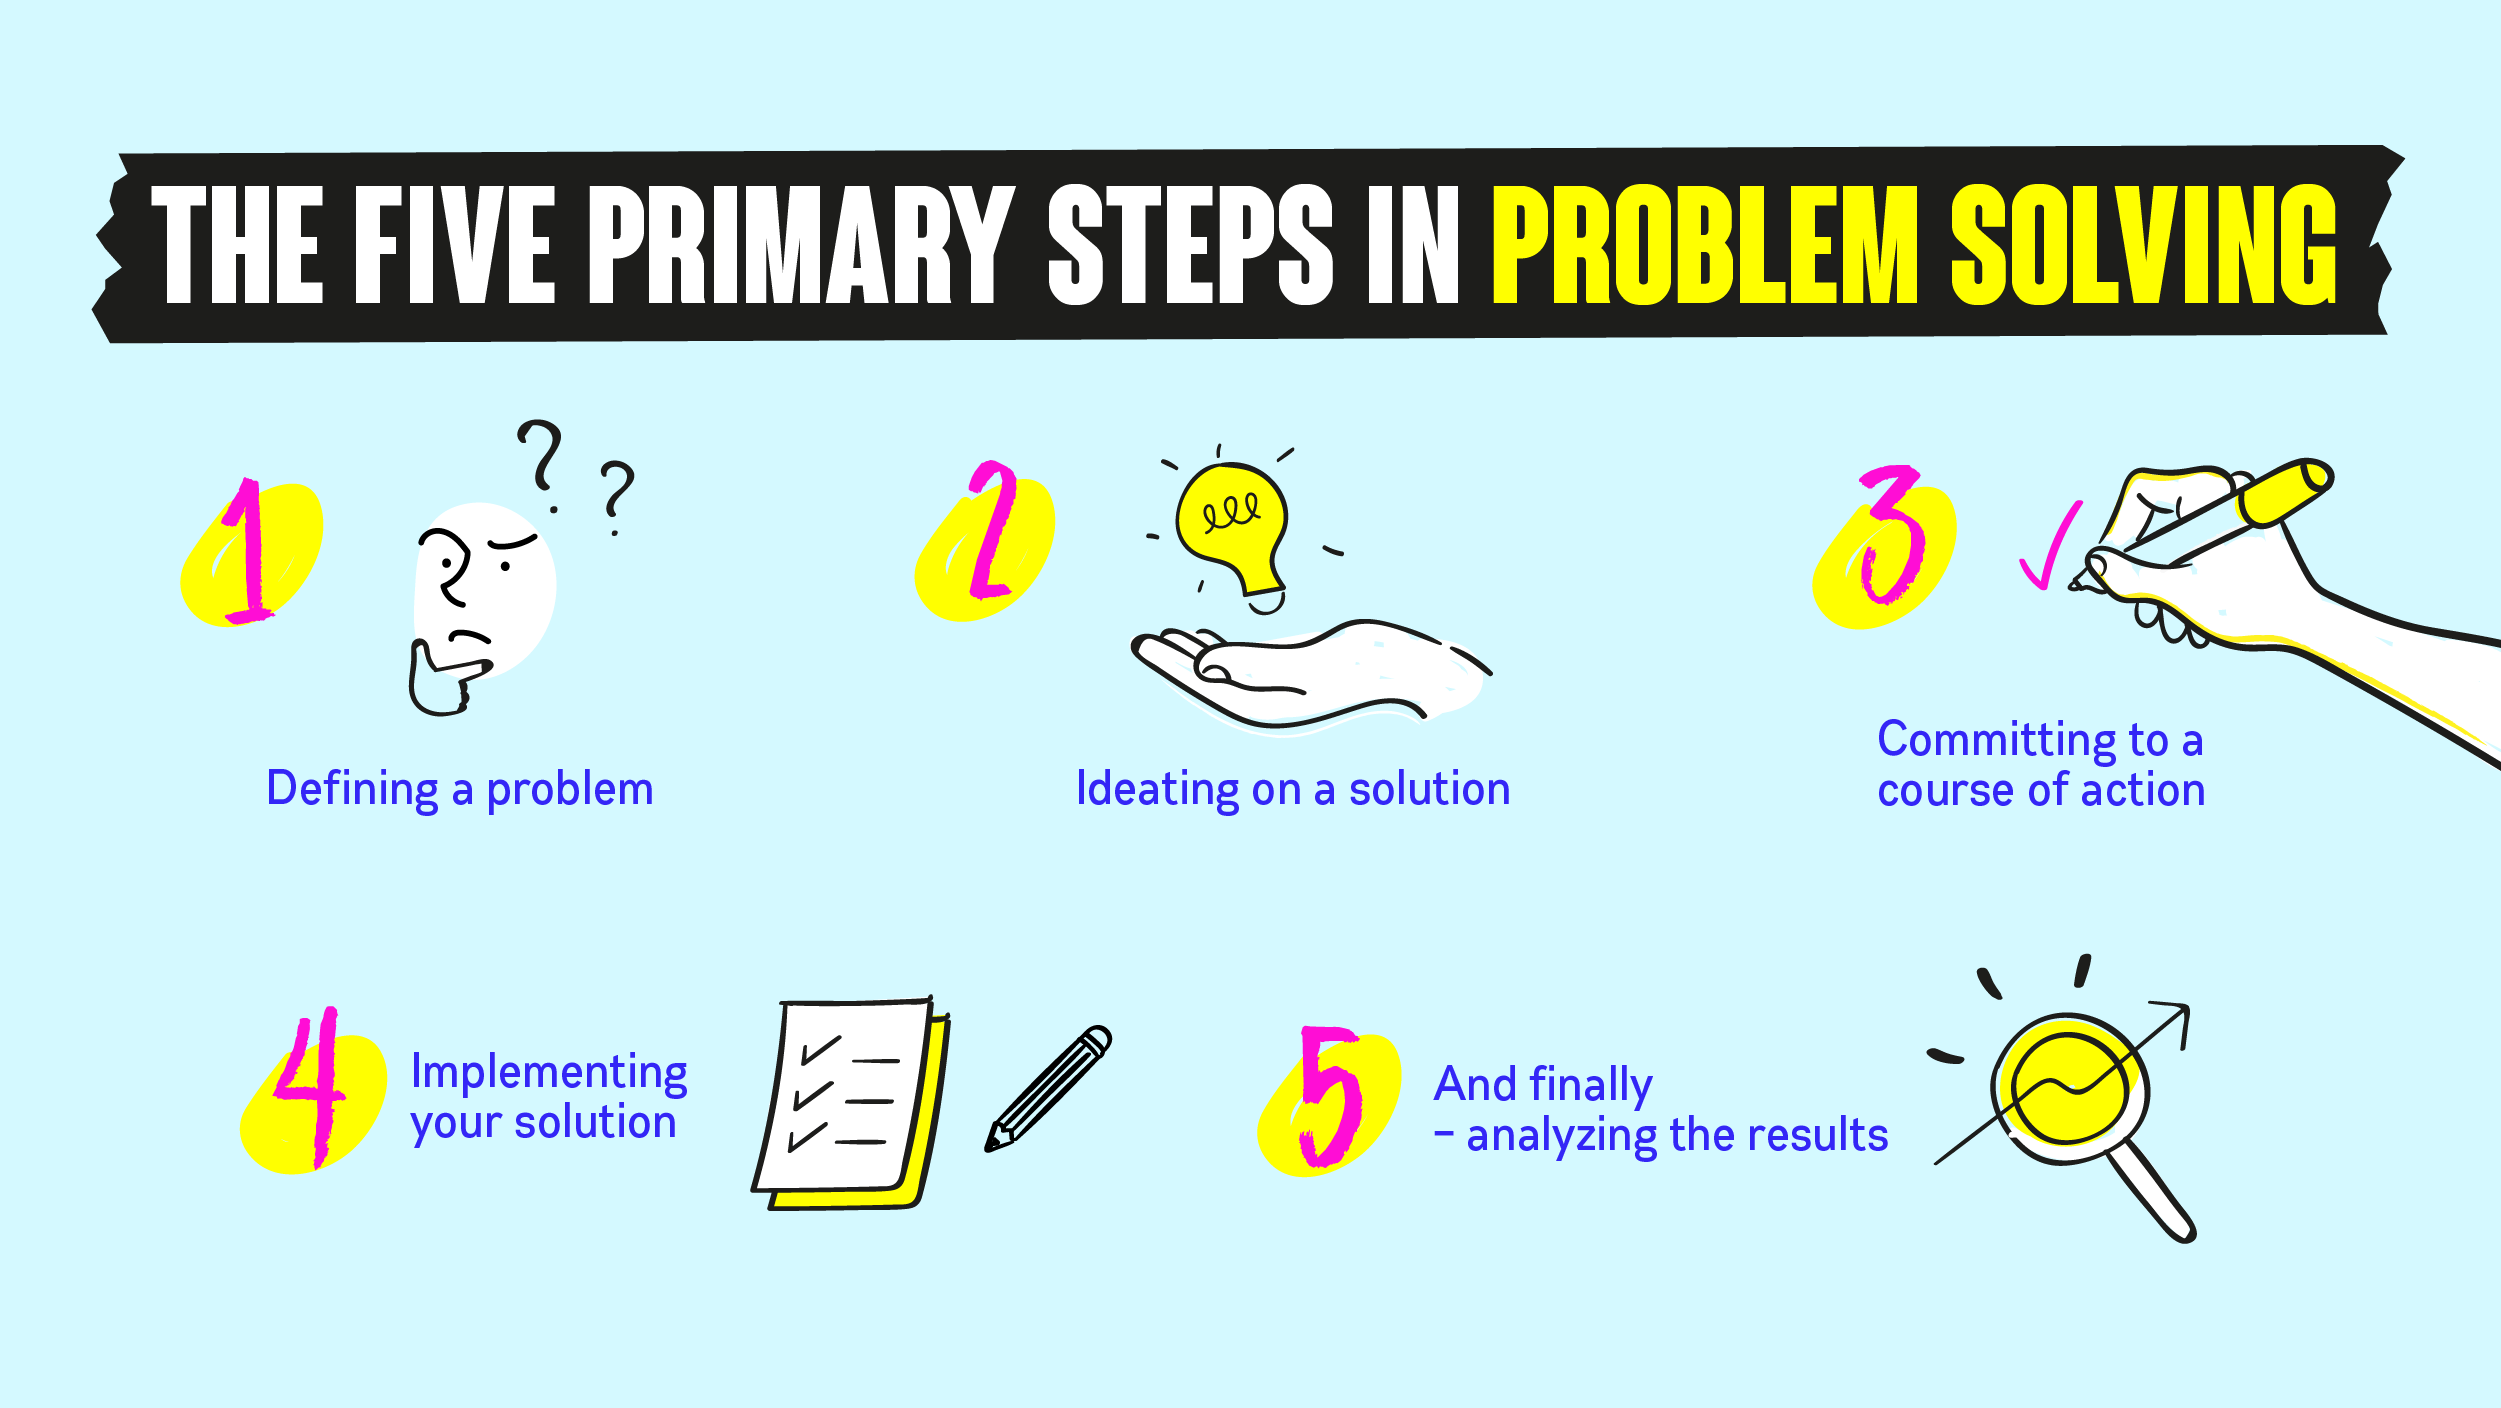 The 5 stages of problem-solving